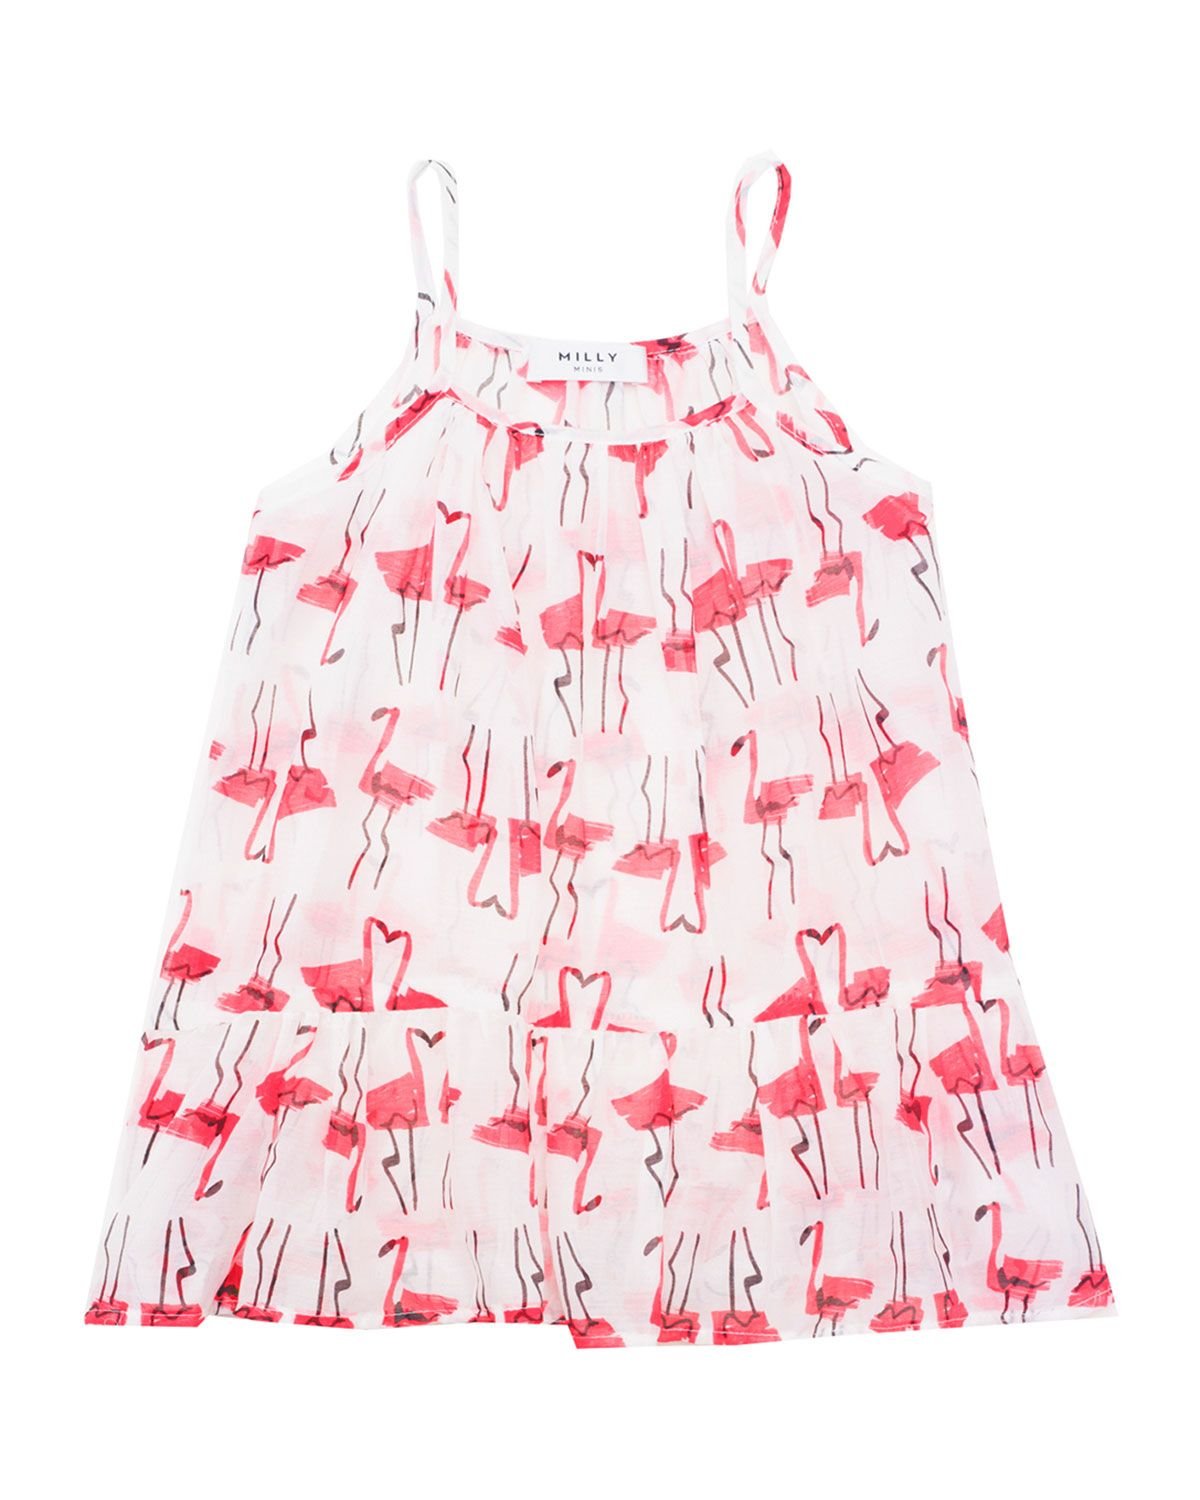 Sleeveless Woven Flamingo-Print Coverup, White/Pink, Size 8-14, Girl's, Size: 10, Multi Colors - Milly Minis